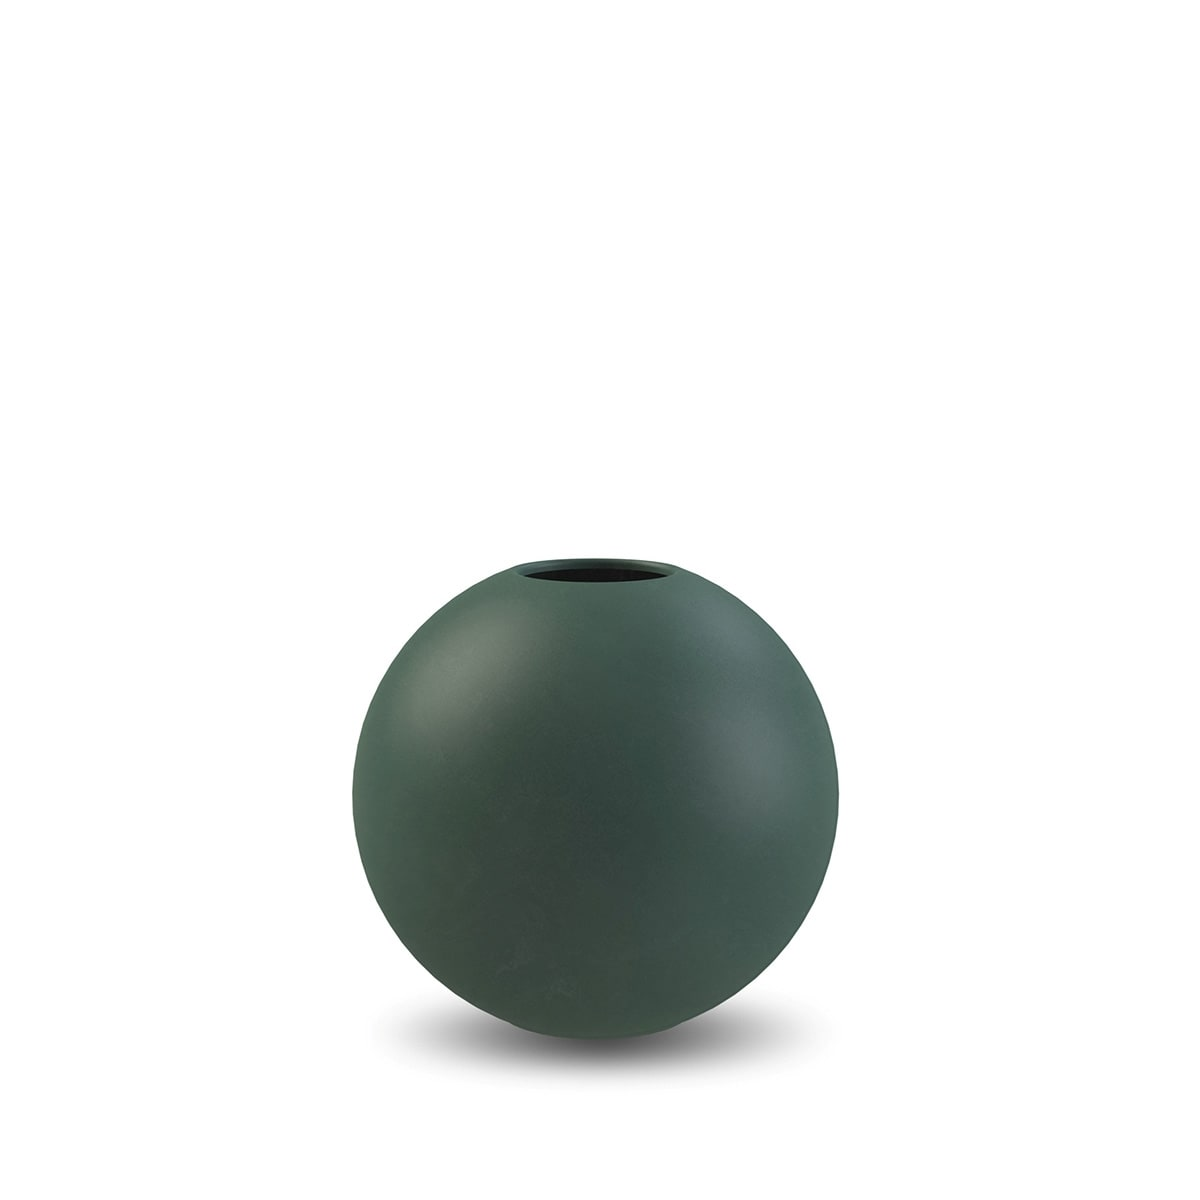 Vas Ball 8cm Dark green